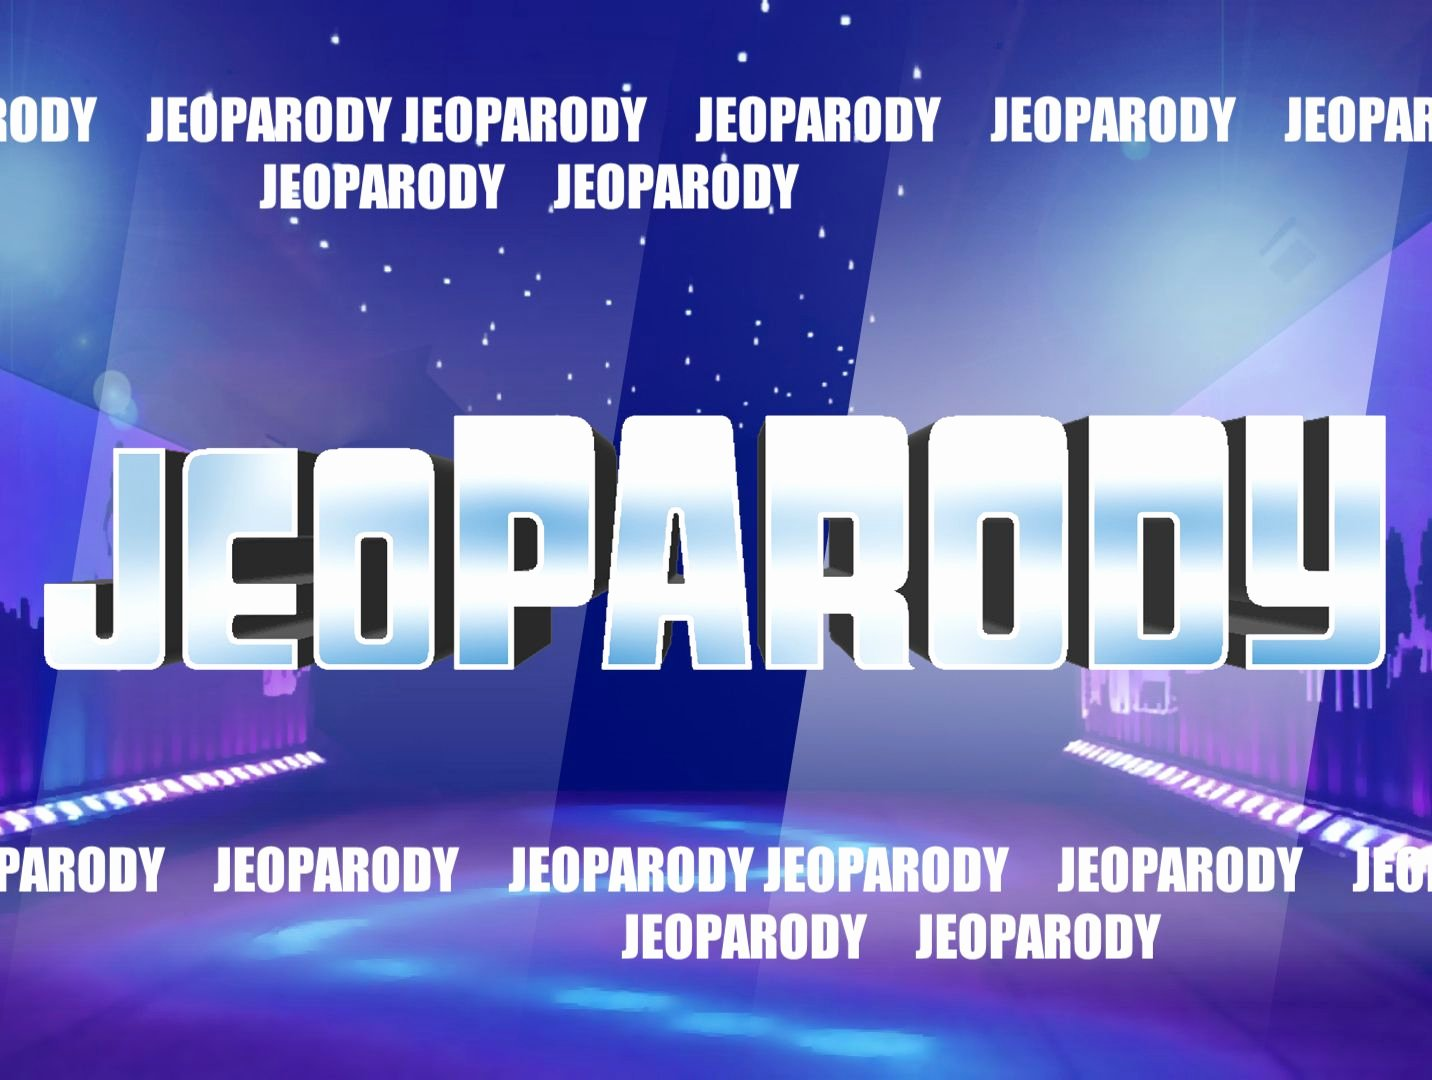 Jeopardy Powerpoint Template 5 Categories Best Of 11 Free Jeopardy Templates for the Classroom